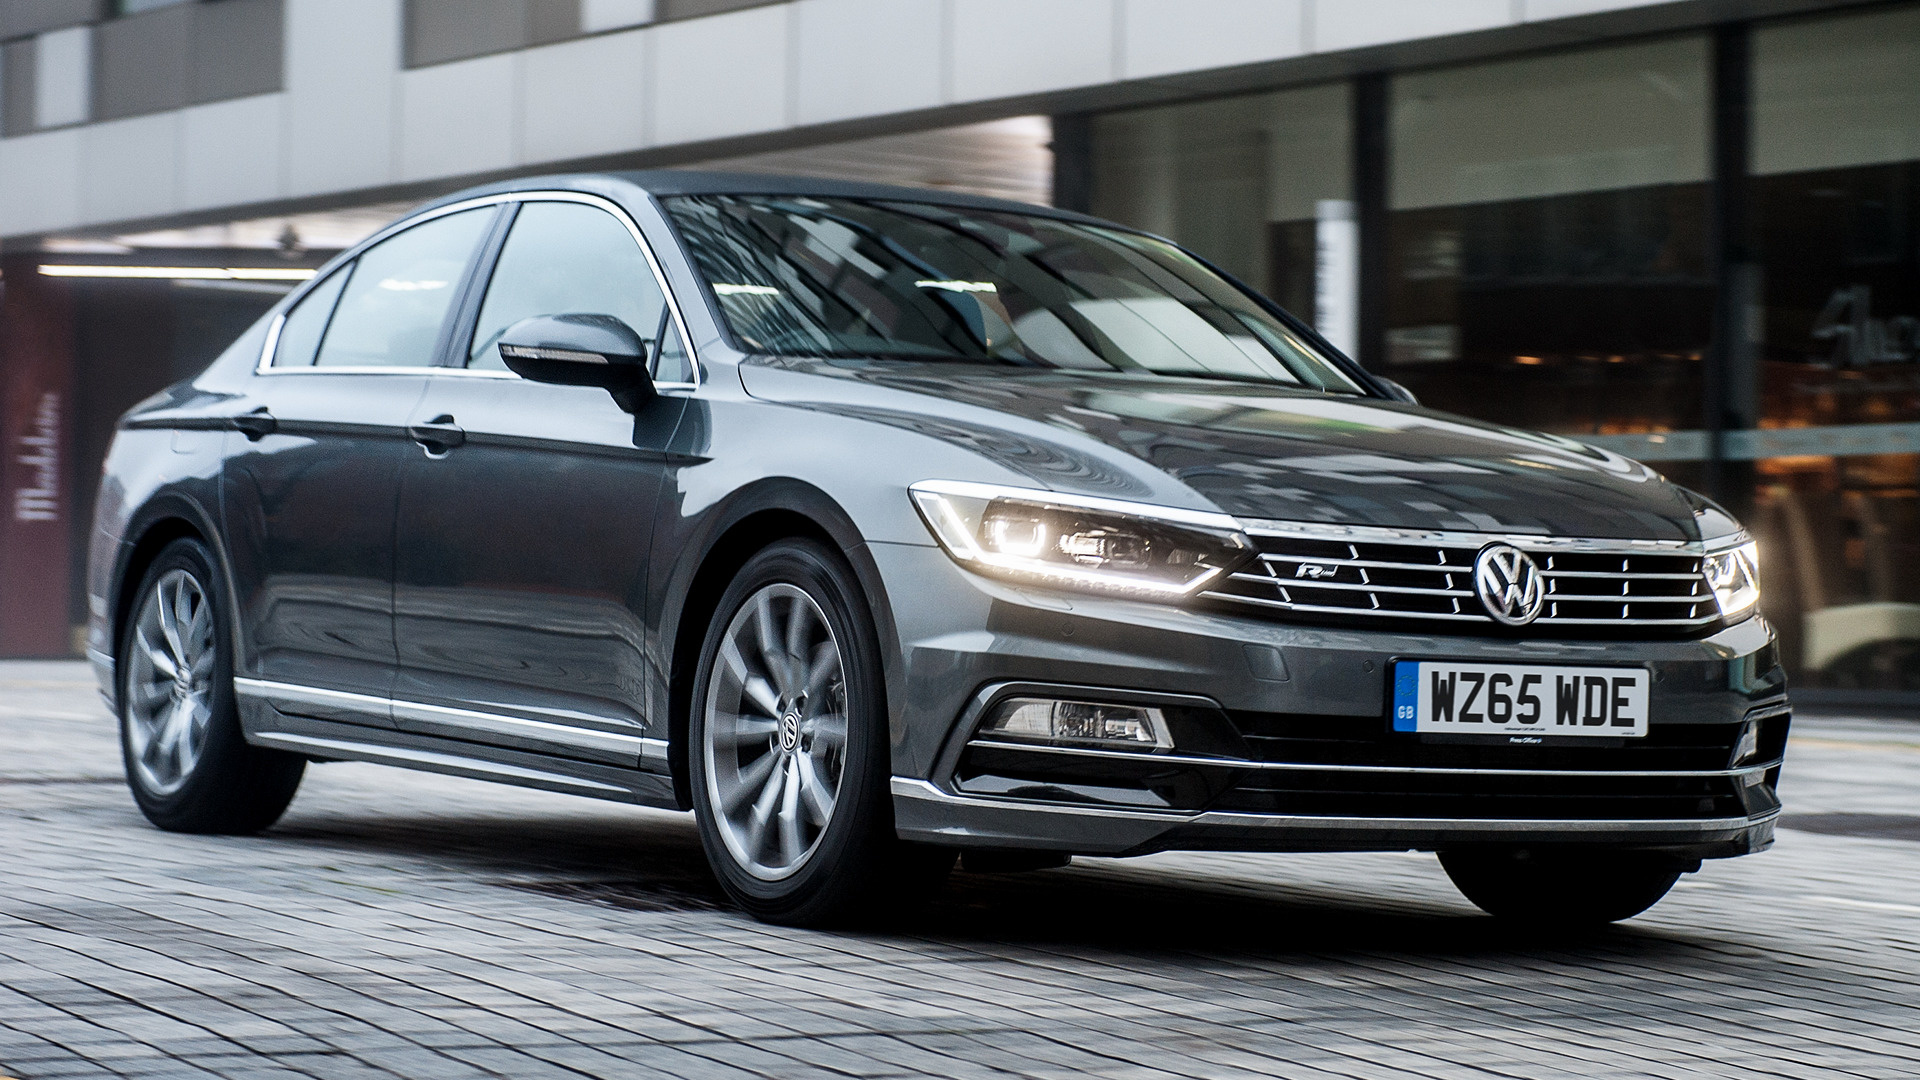 Volkswagen Passat R Line 2015 Uk Wallpapers And Hd